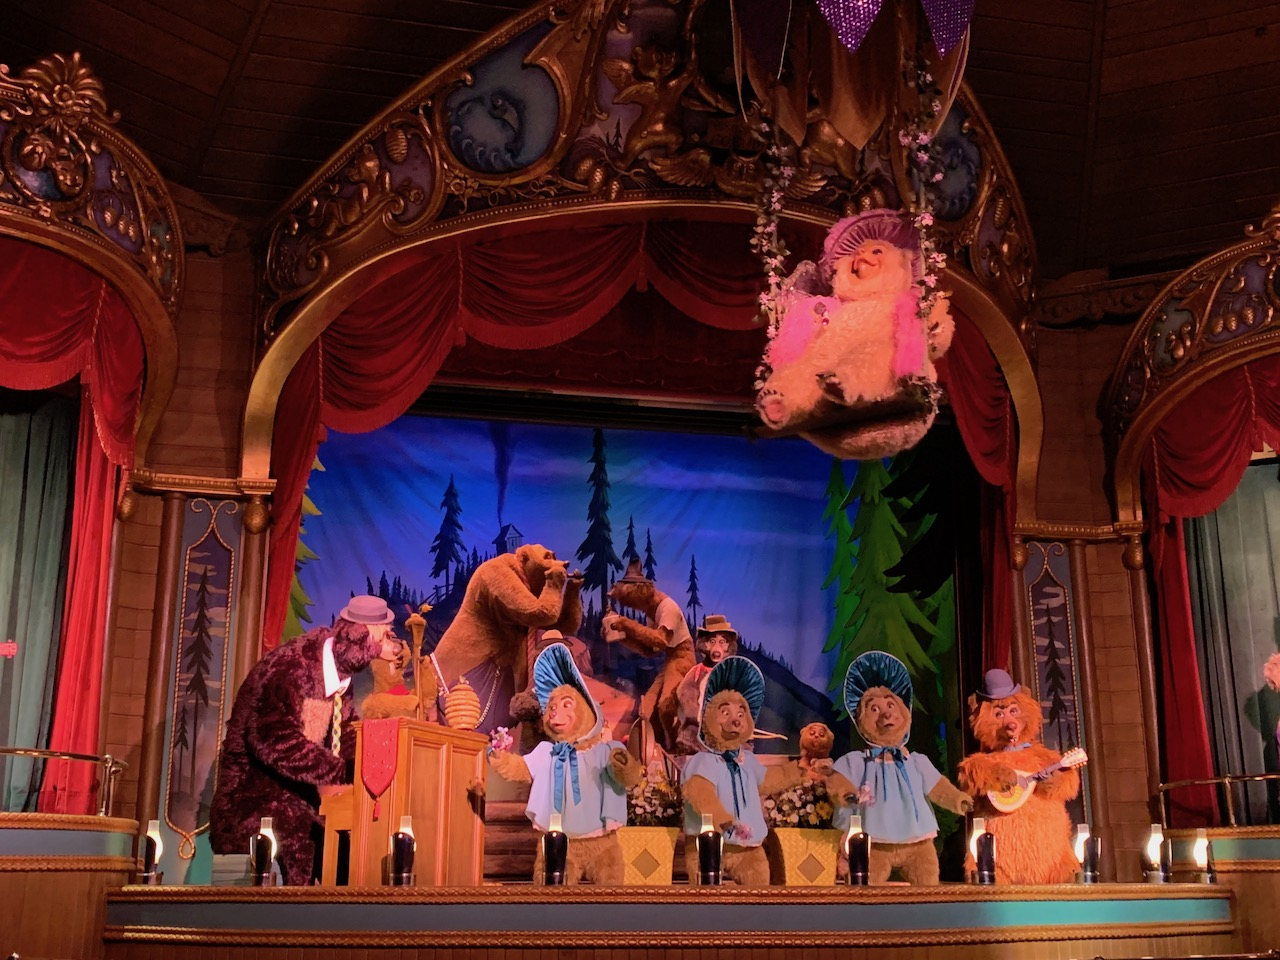 disney parks ranked around the world country bears.jpeg